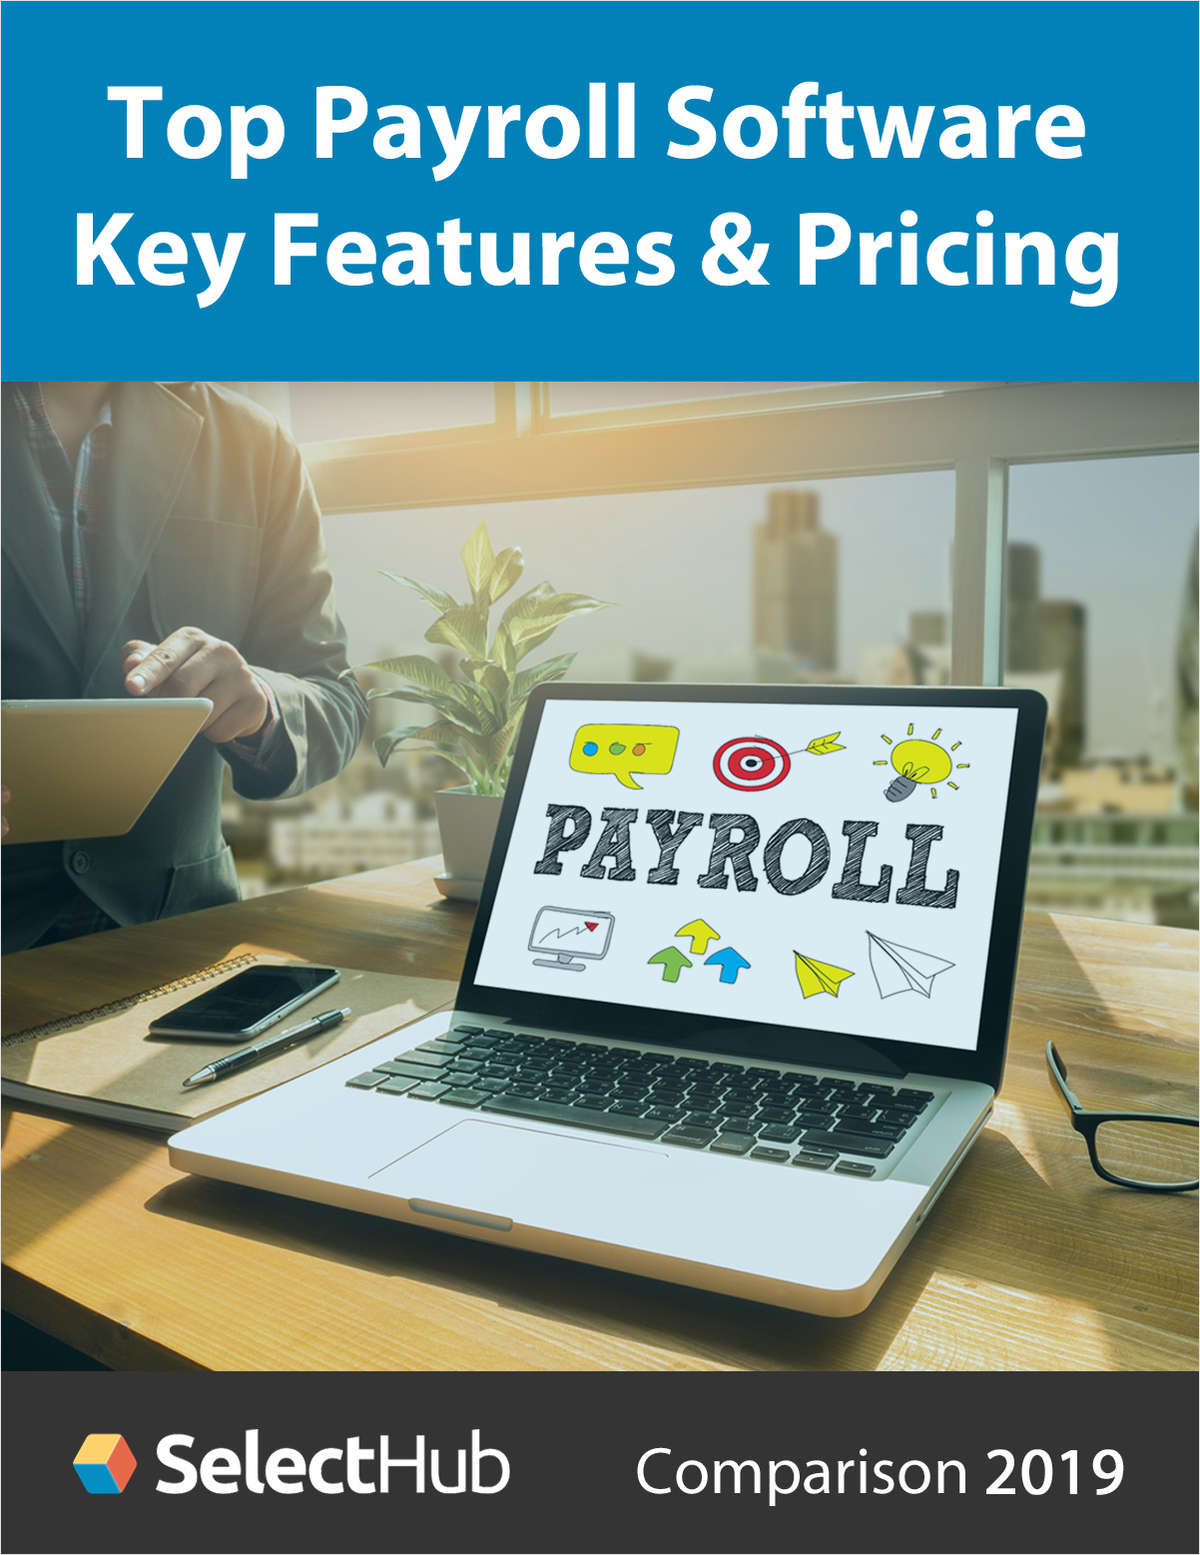 Top Payroll Software Systems--Get Key Features, Recommendations & Pricing